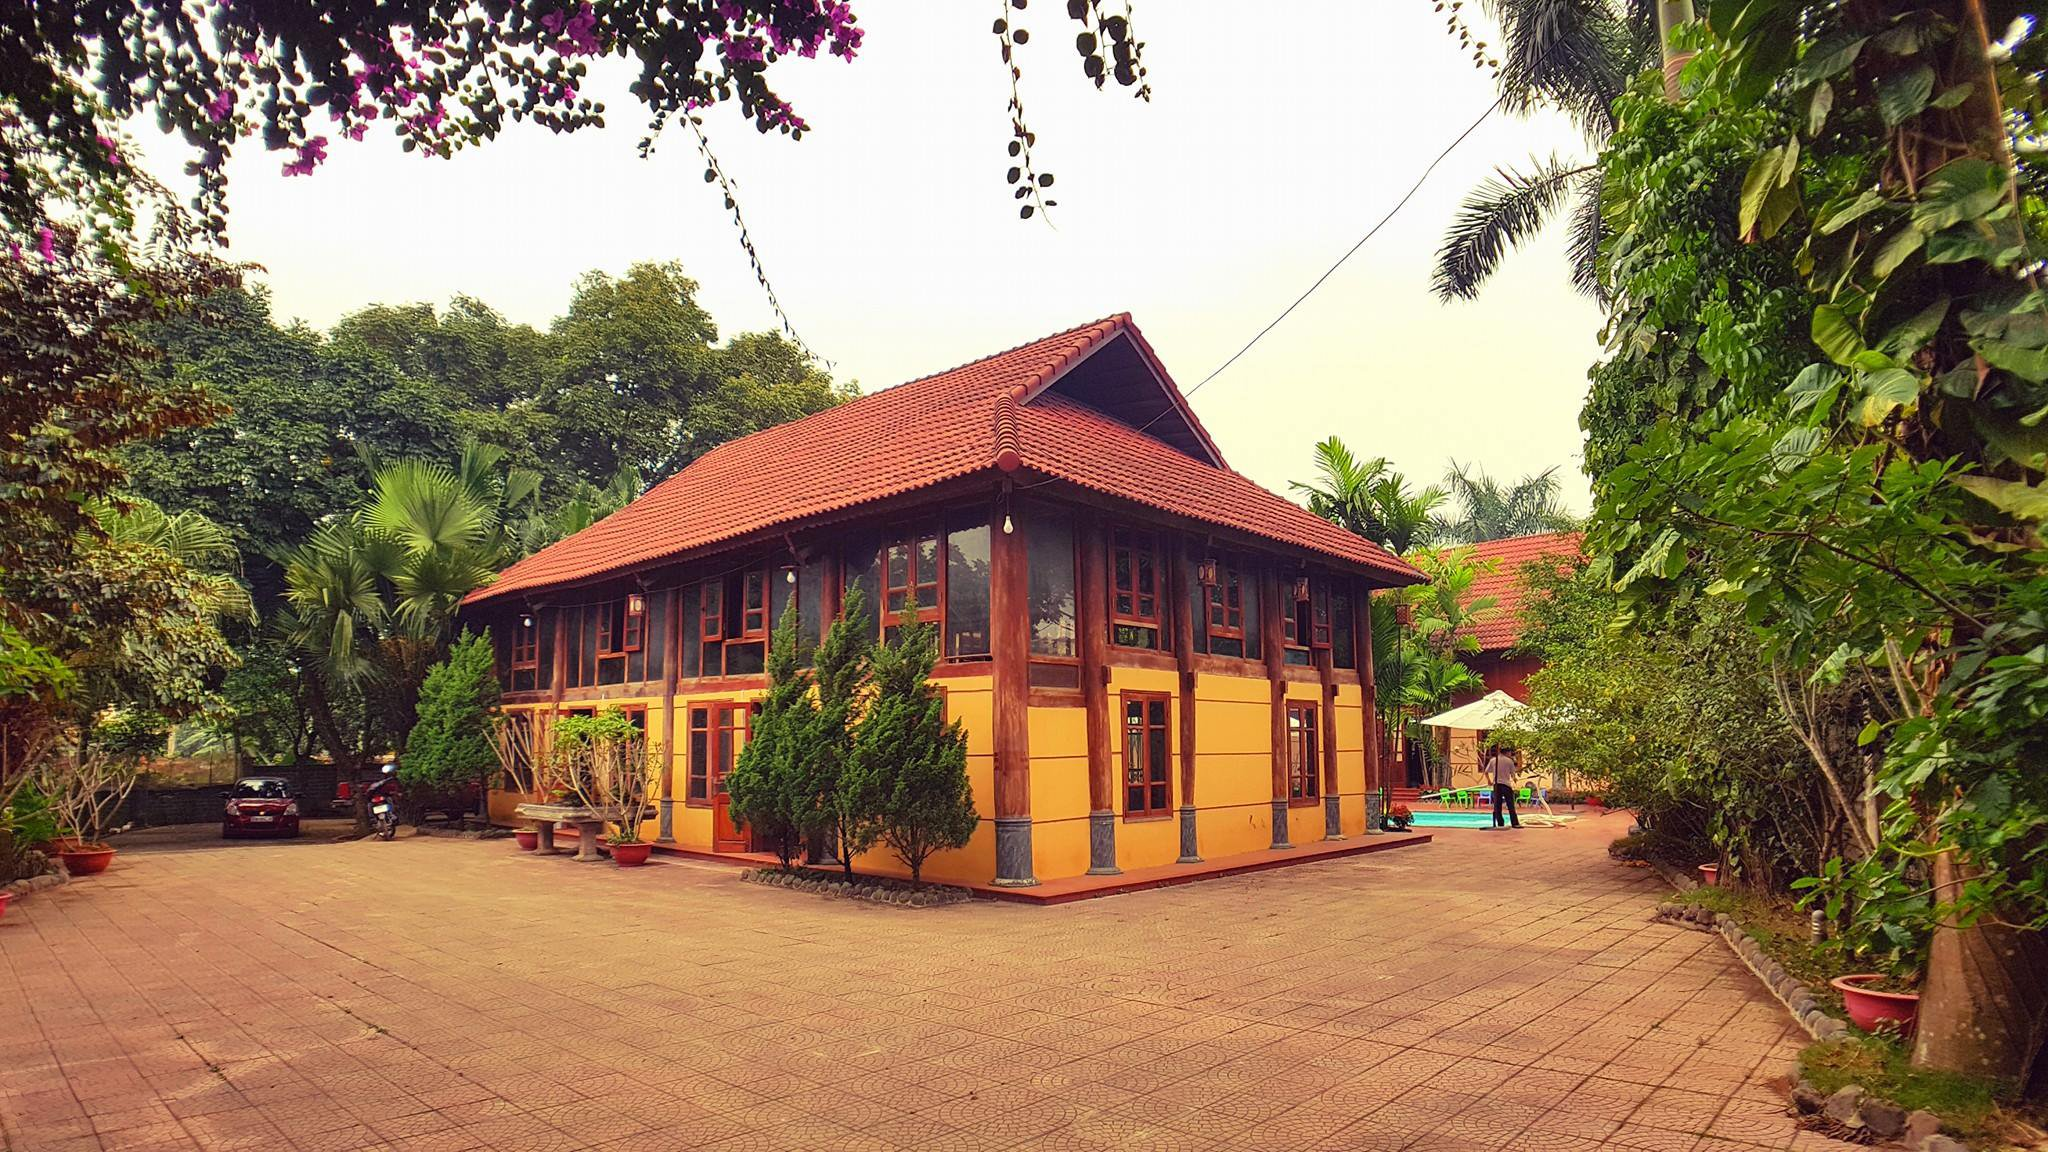 khuon vien country house homestay thach that ha noi